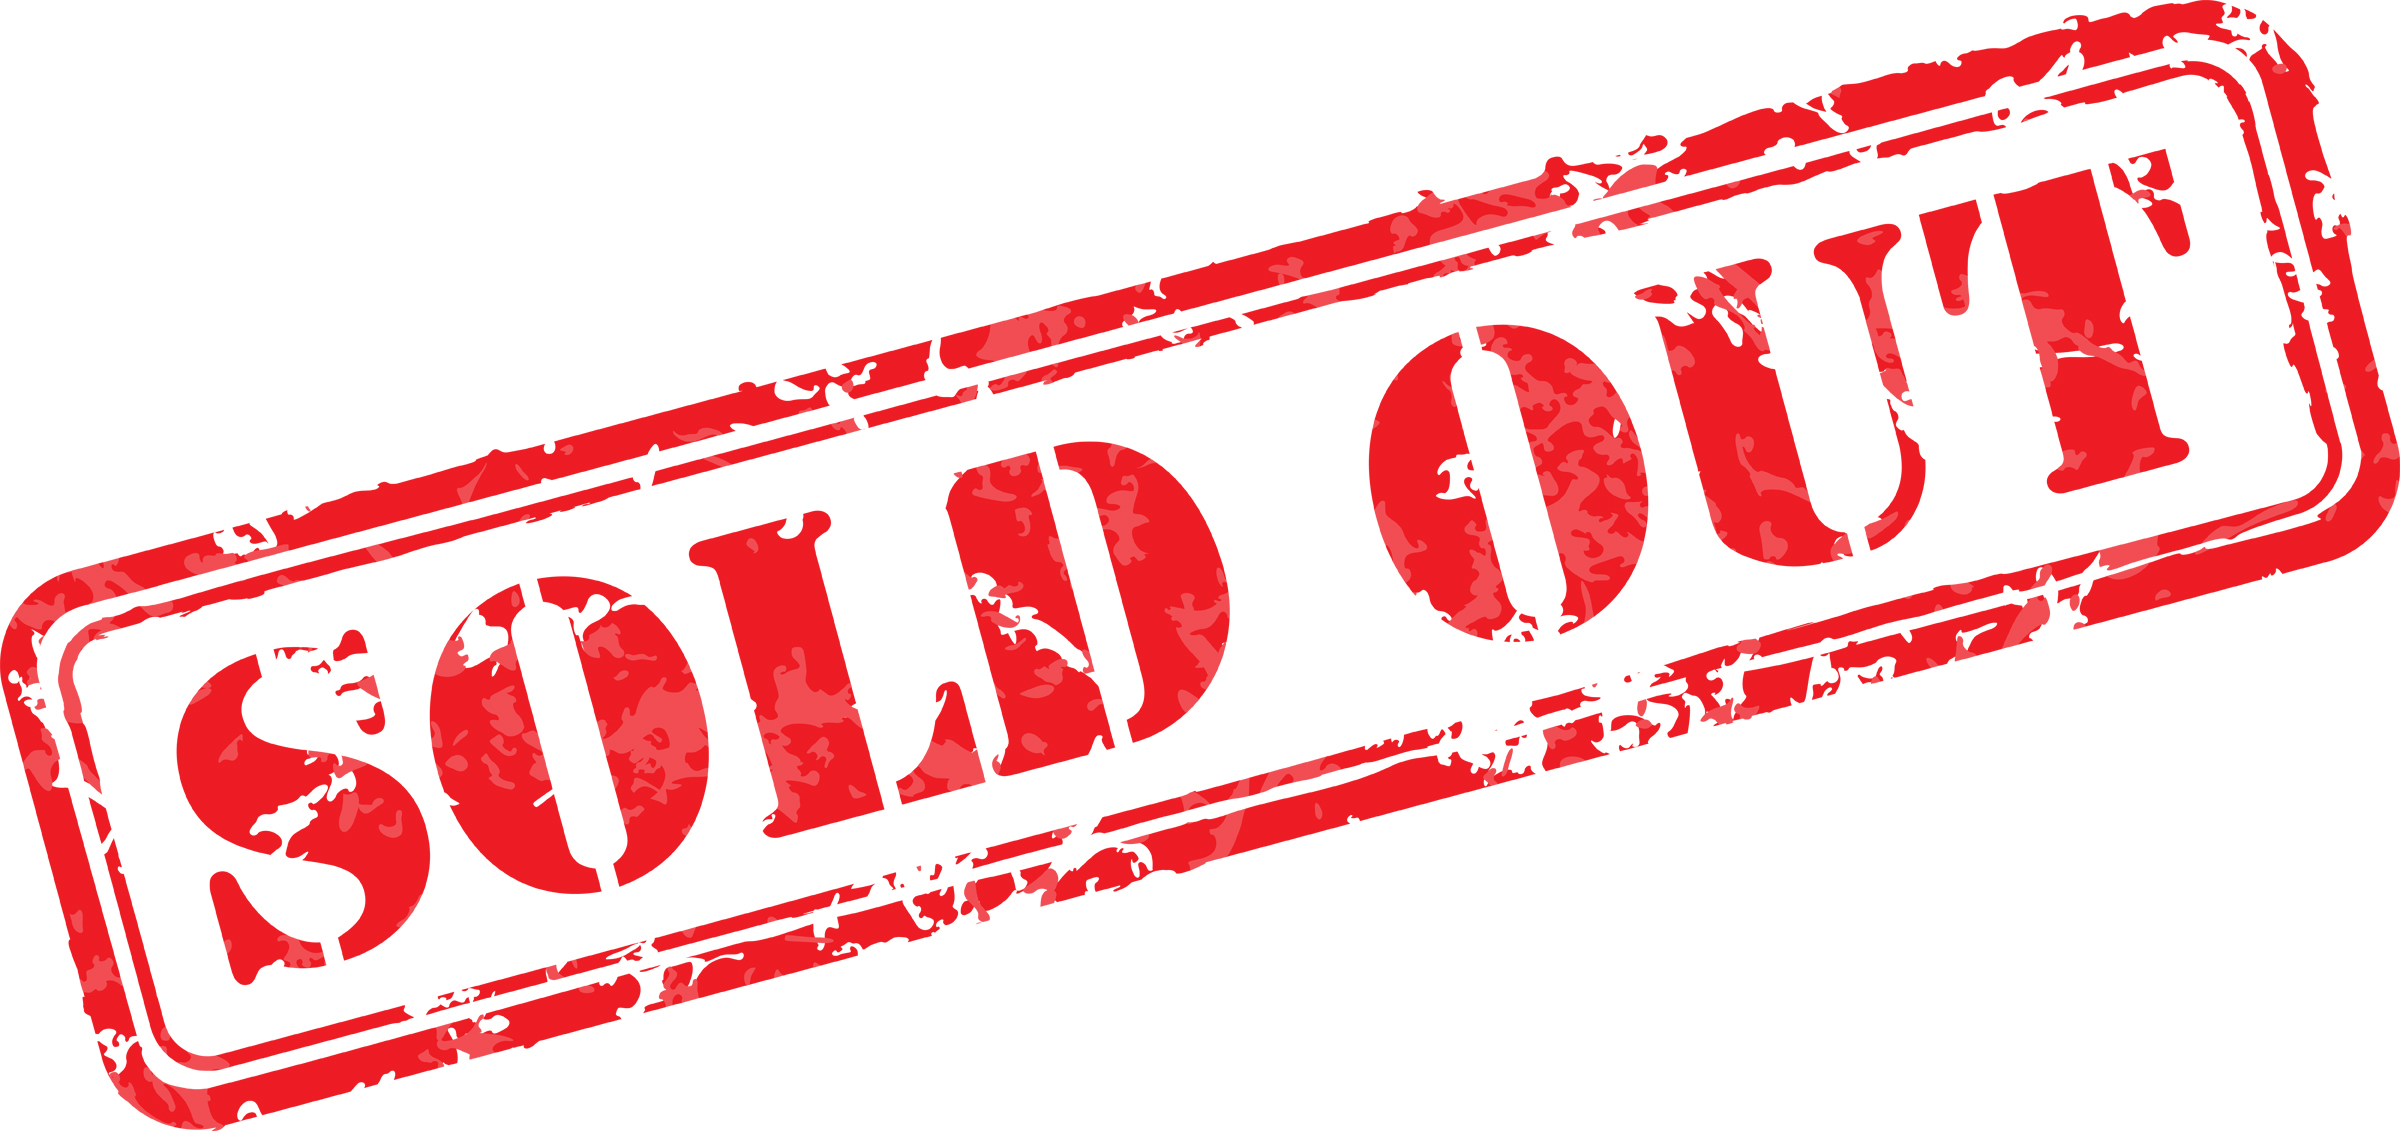 Sold Out Png image #19951